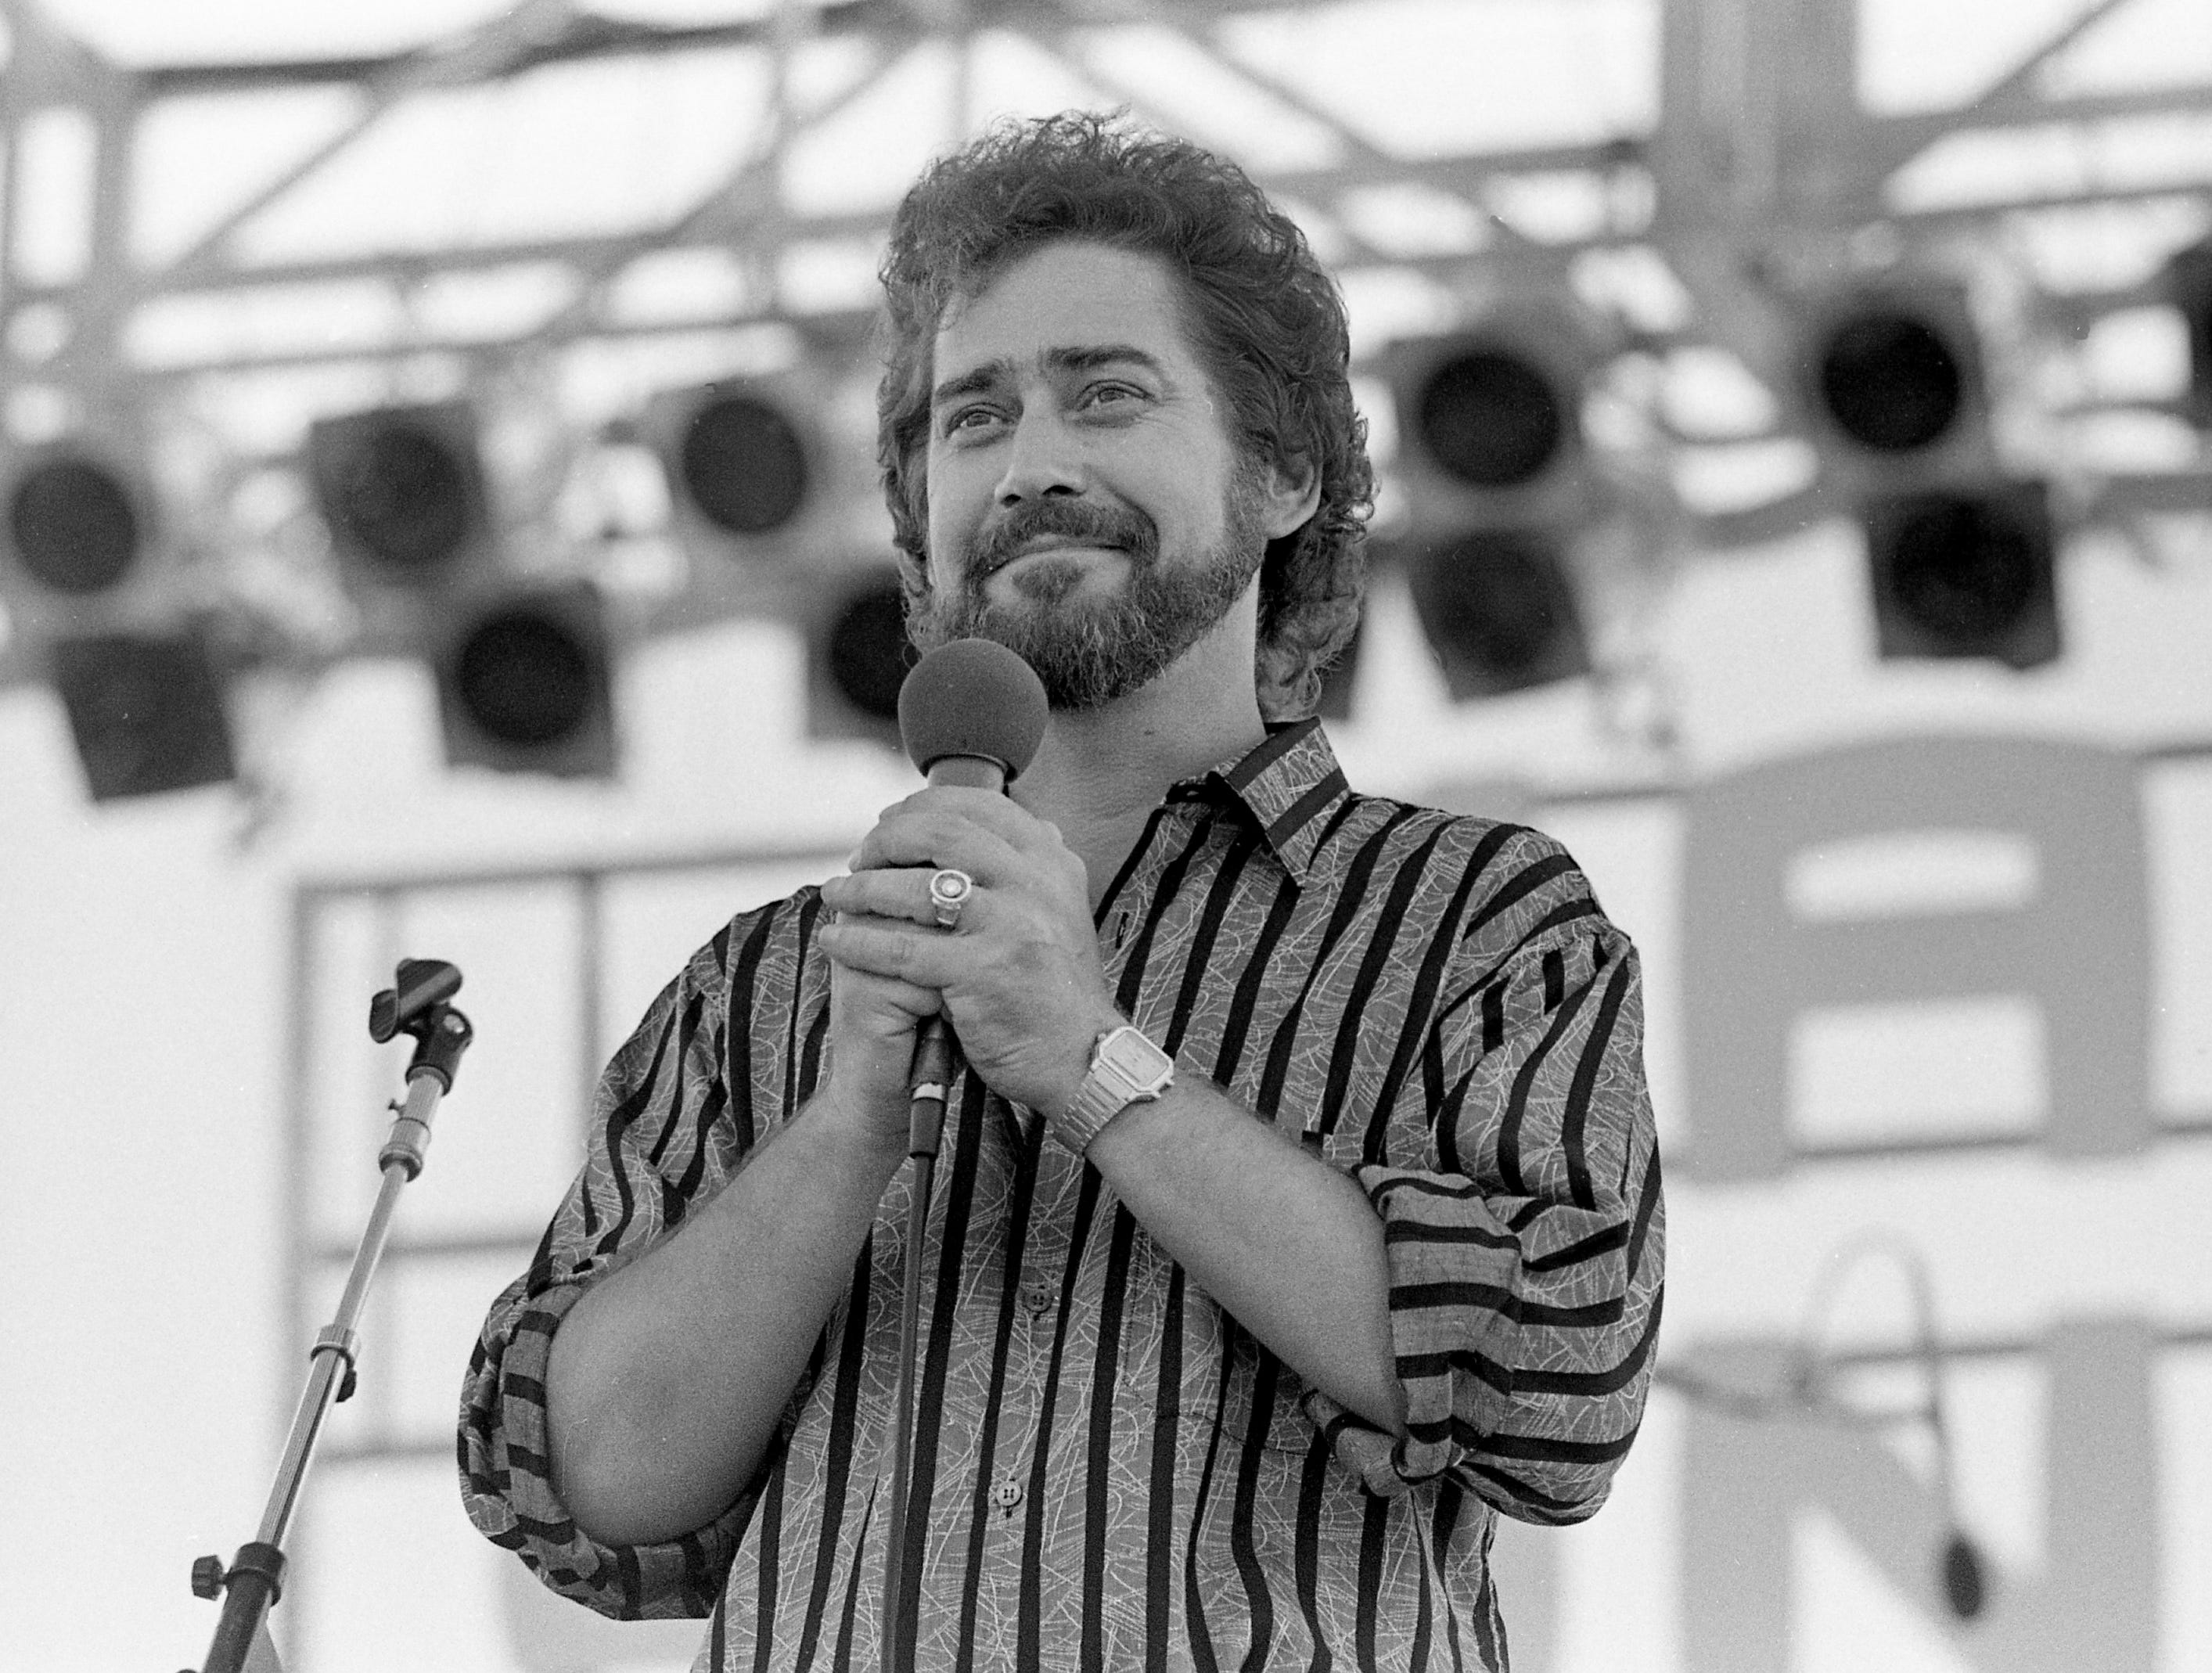 Earl Thomas Conley is performing for the audience at the Nashville Songwriters Association showcase June 8, 1984 during Fan Fair.